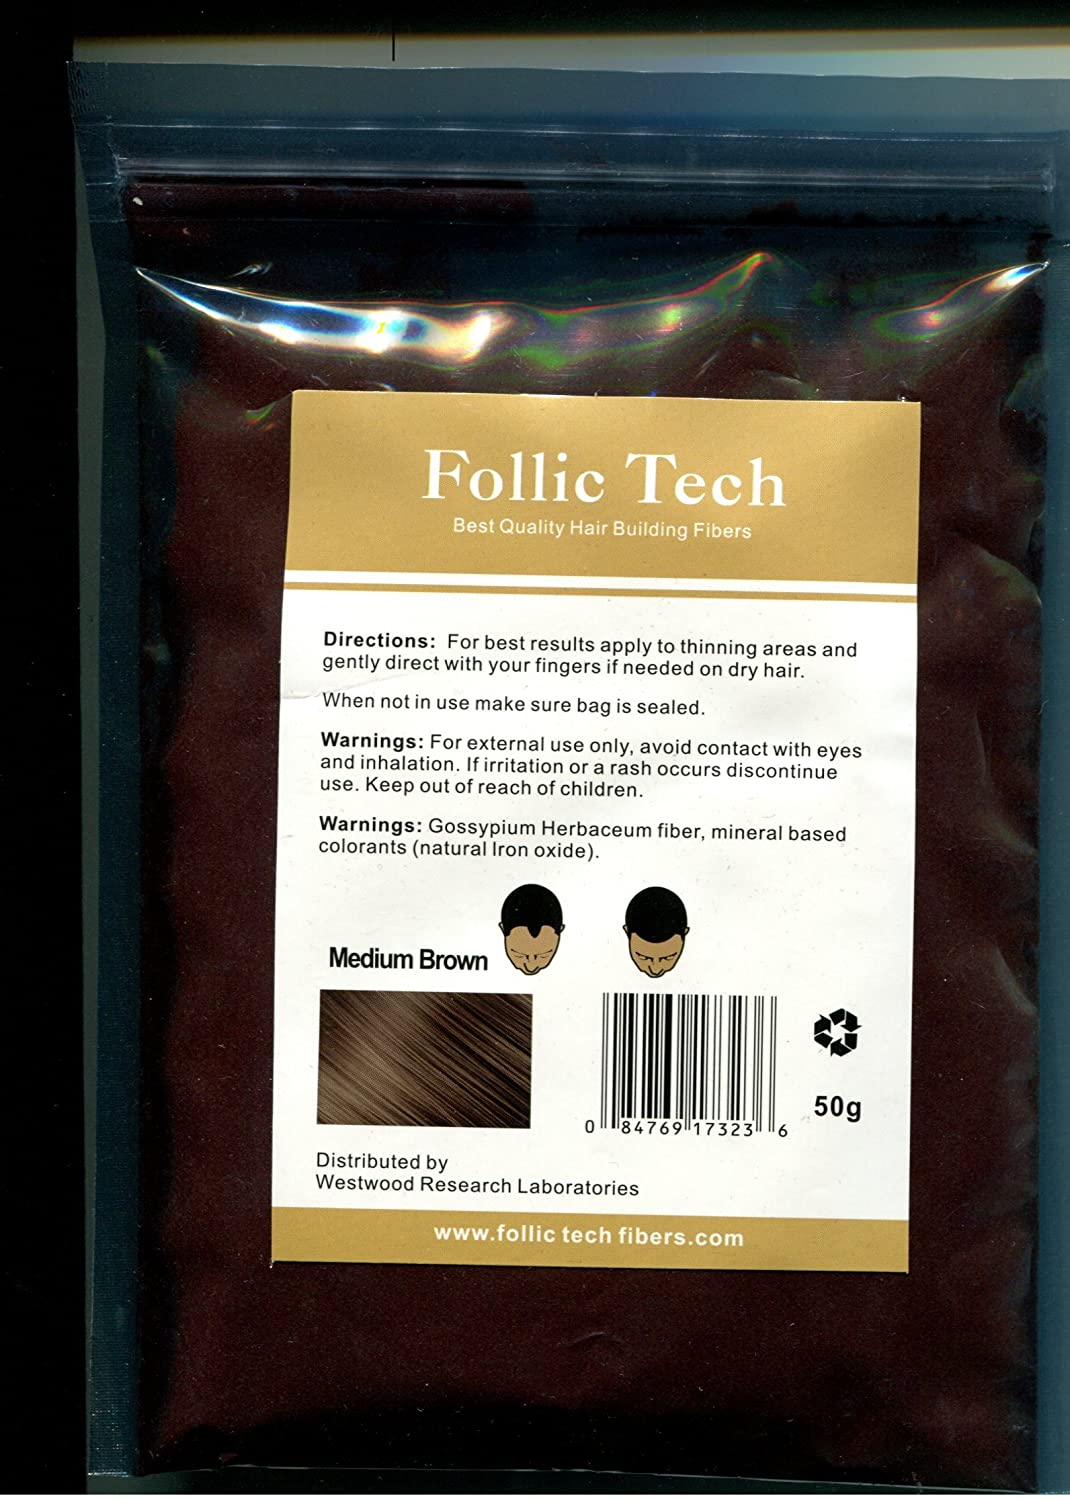 Follic Tech Hair Building Fibers 55 Grams Not 50 Highest Grade Refill Your Bottles from Competitors Like Toppik, Xfusion, (Medium Brown)